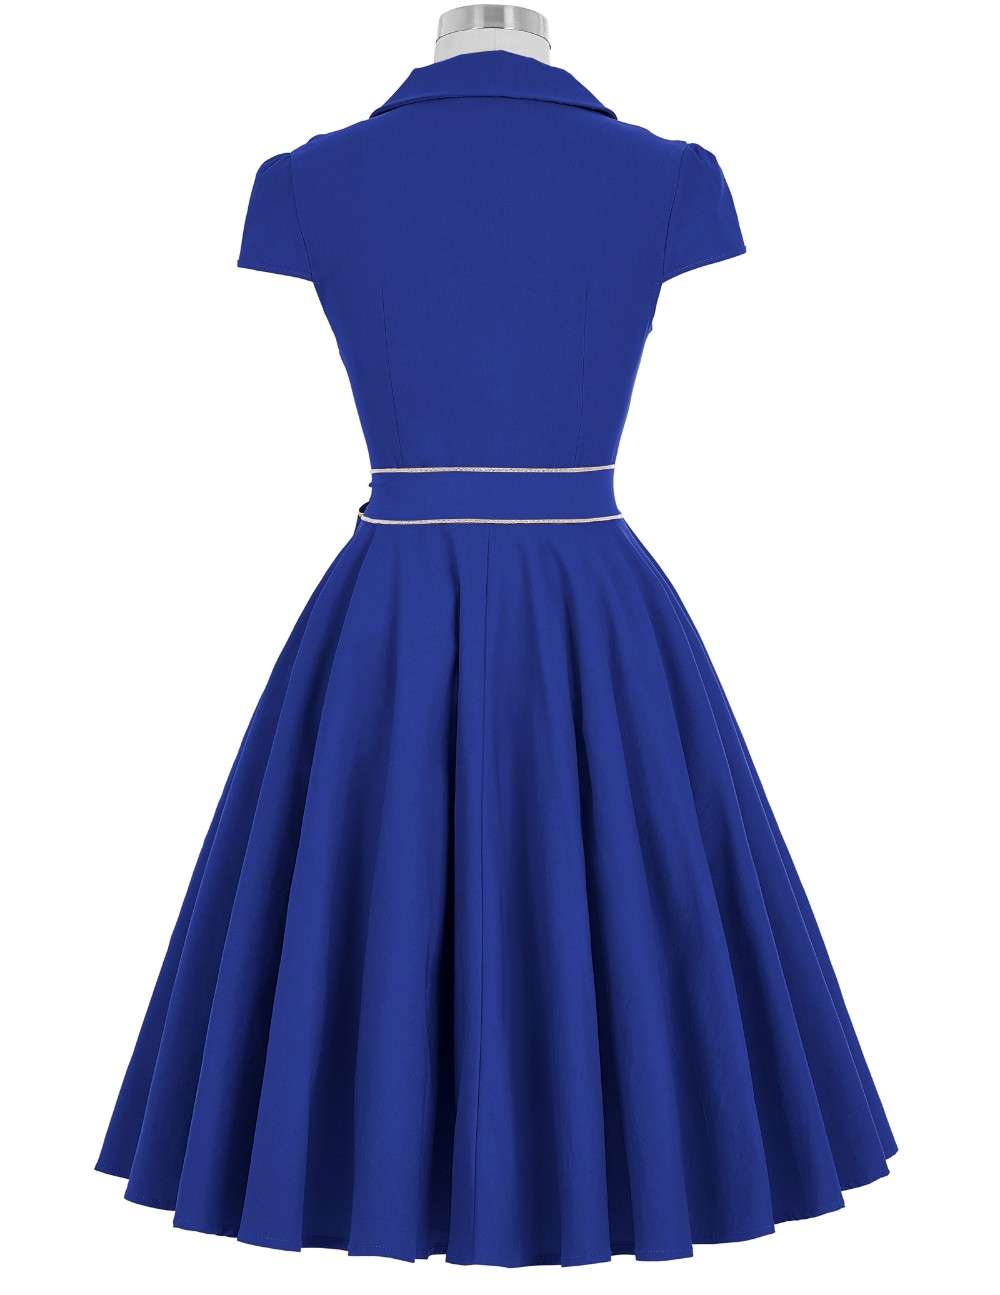 Belle Poque Retro Vintage Cap Sleeve V-Neck High Stretchy Blue Short 50s 60s Vintage Dress BP000167-4